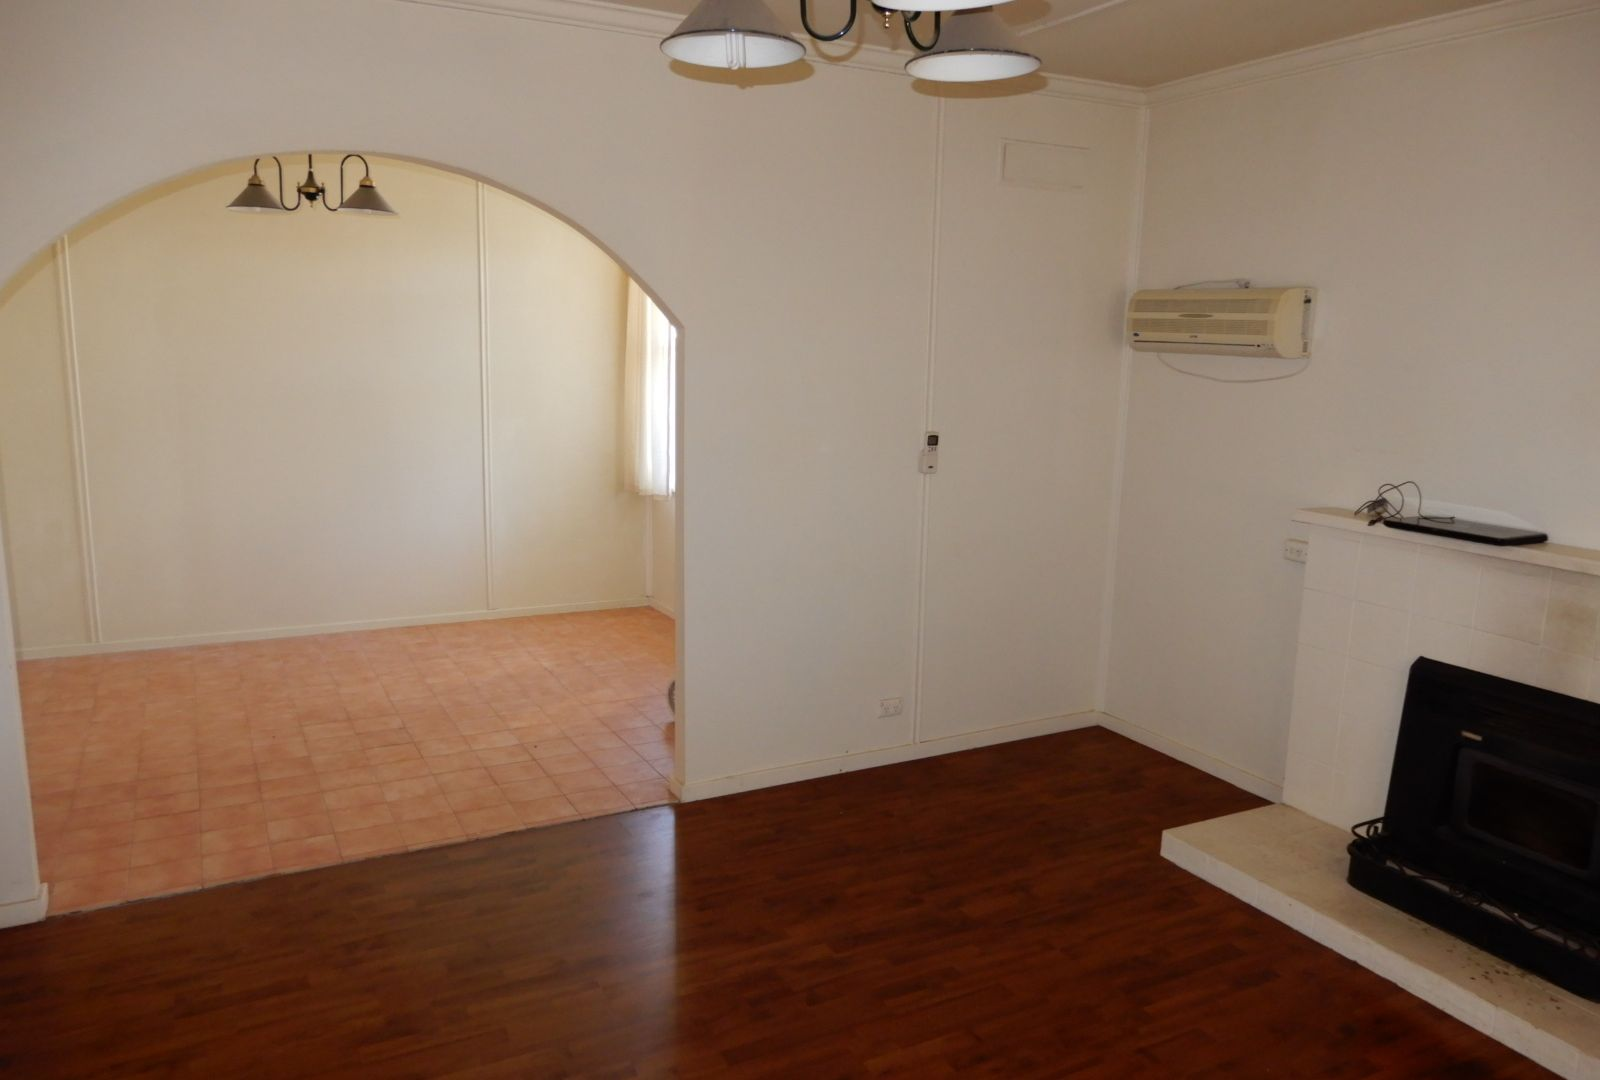 120 Queen St, Peterborough SA 5422, Image 2